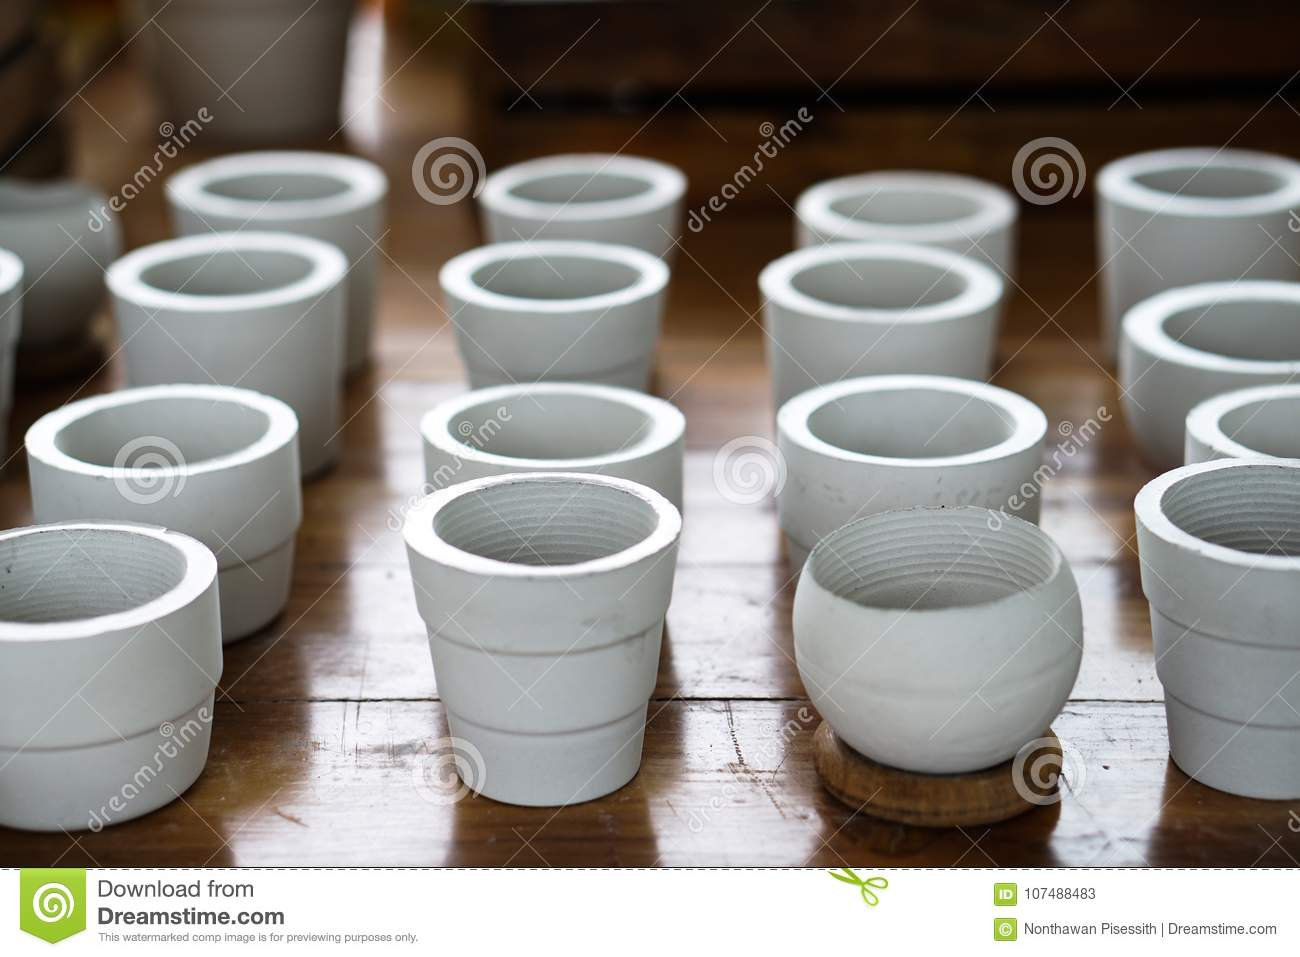 White Clay Ceramic Planting Pots Stock Image - Image of